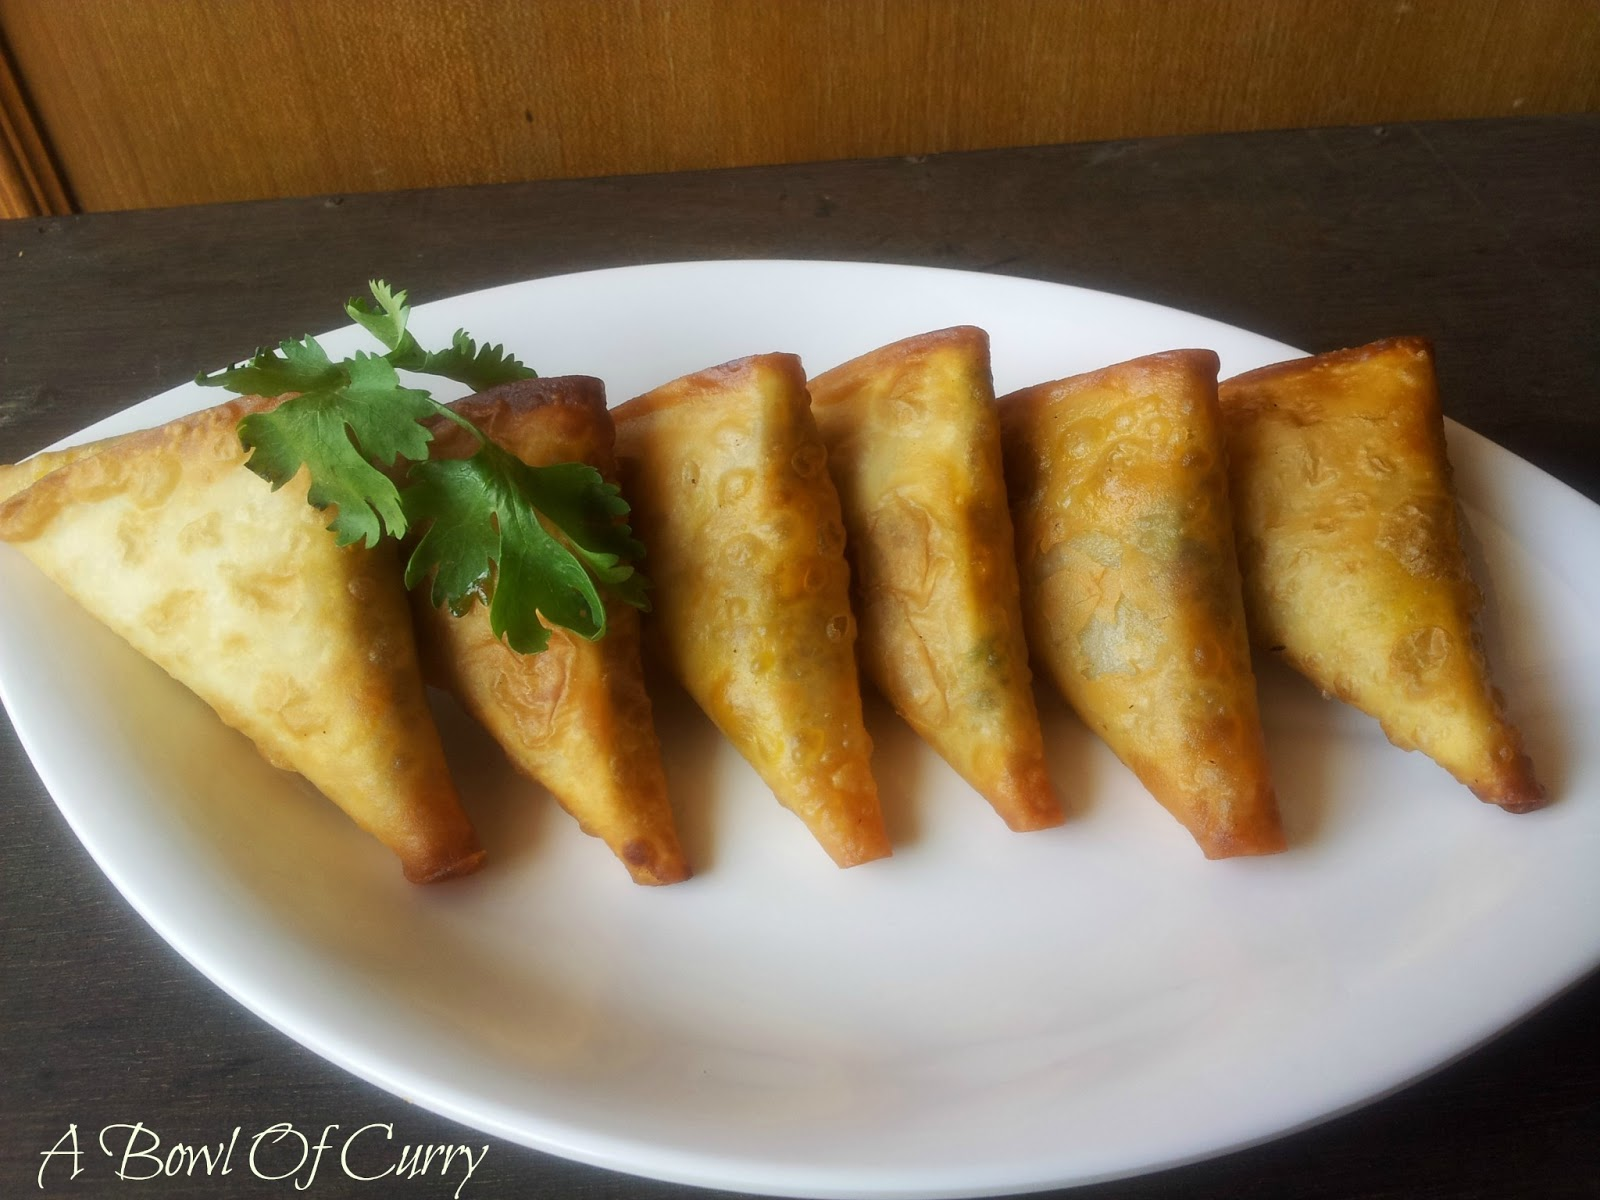 A Bowl Of Curry: Chicken Samosa